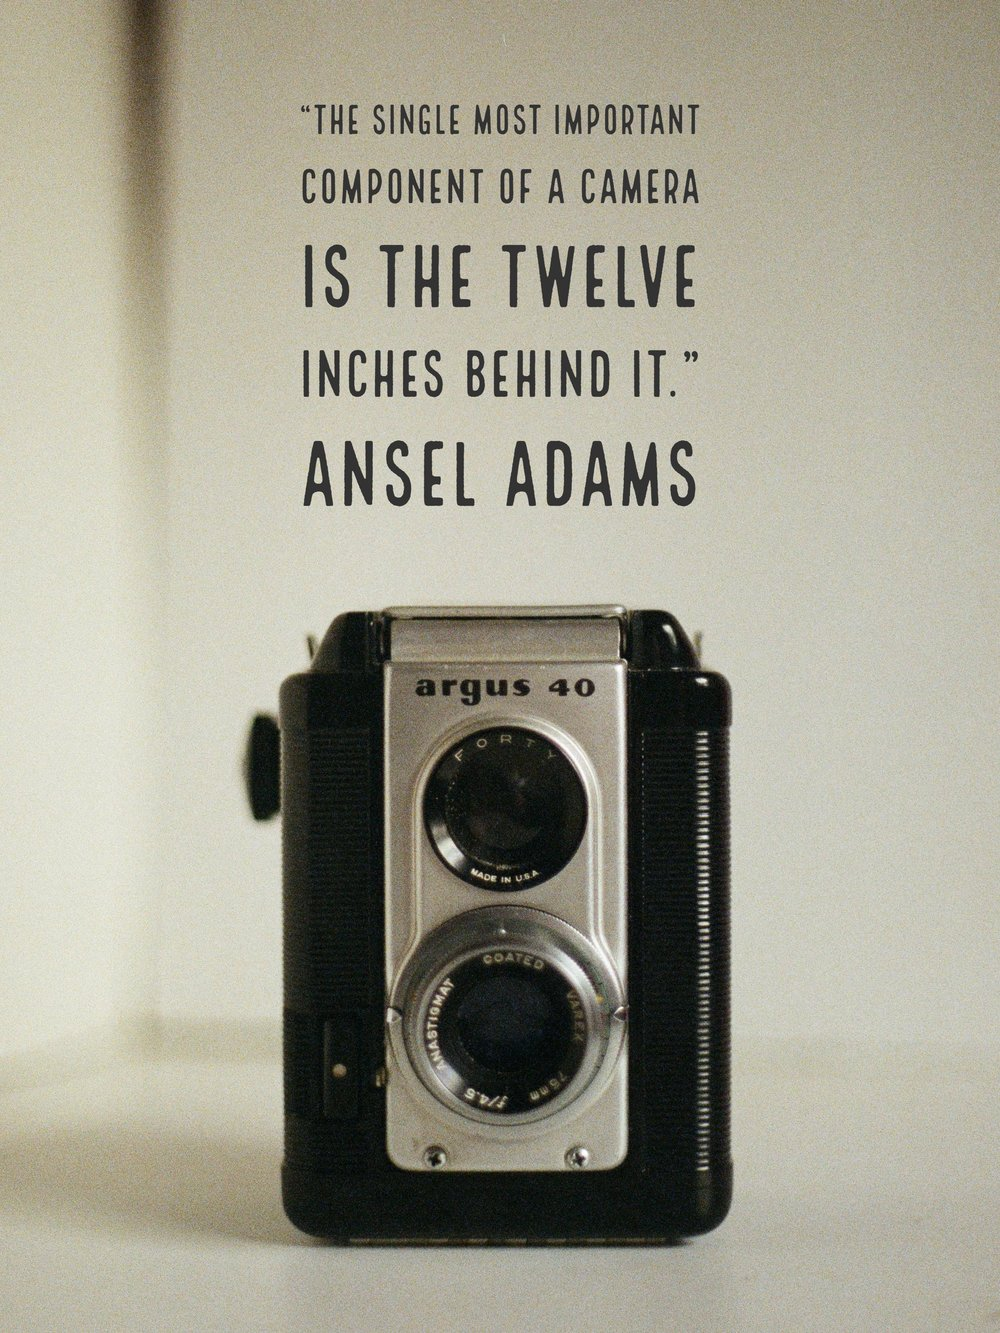 """The single most important component of a camera is the twelve inches behind it."" - Ansel Adams"